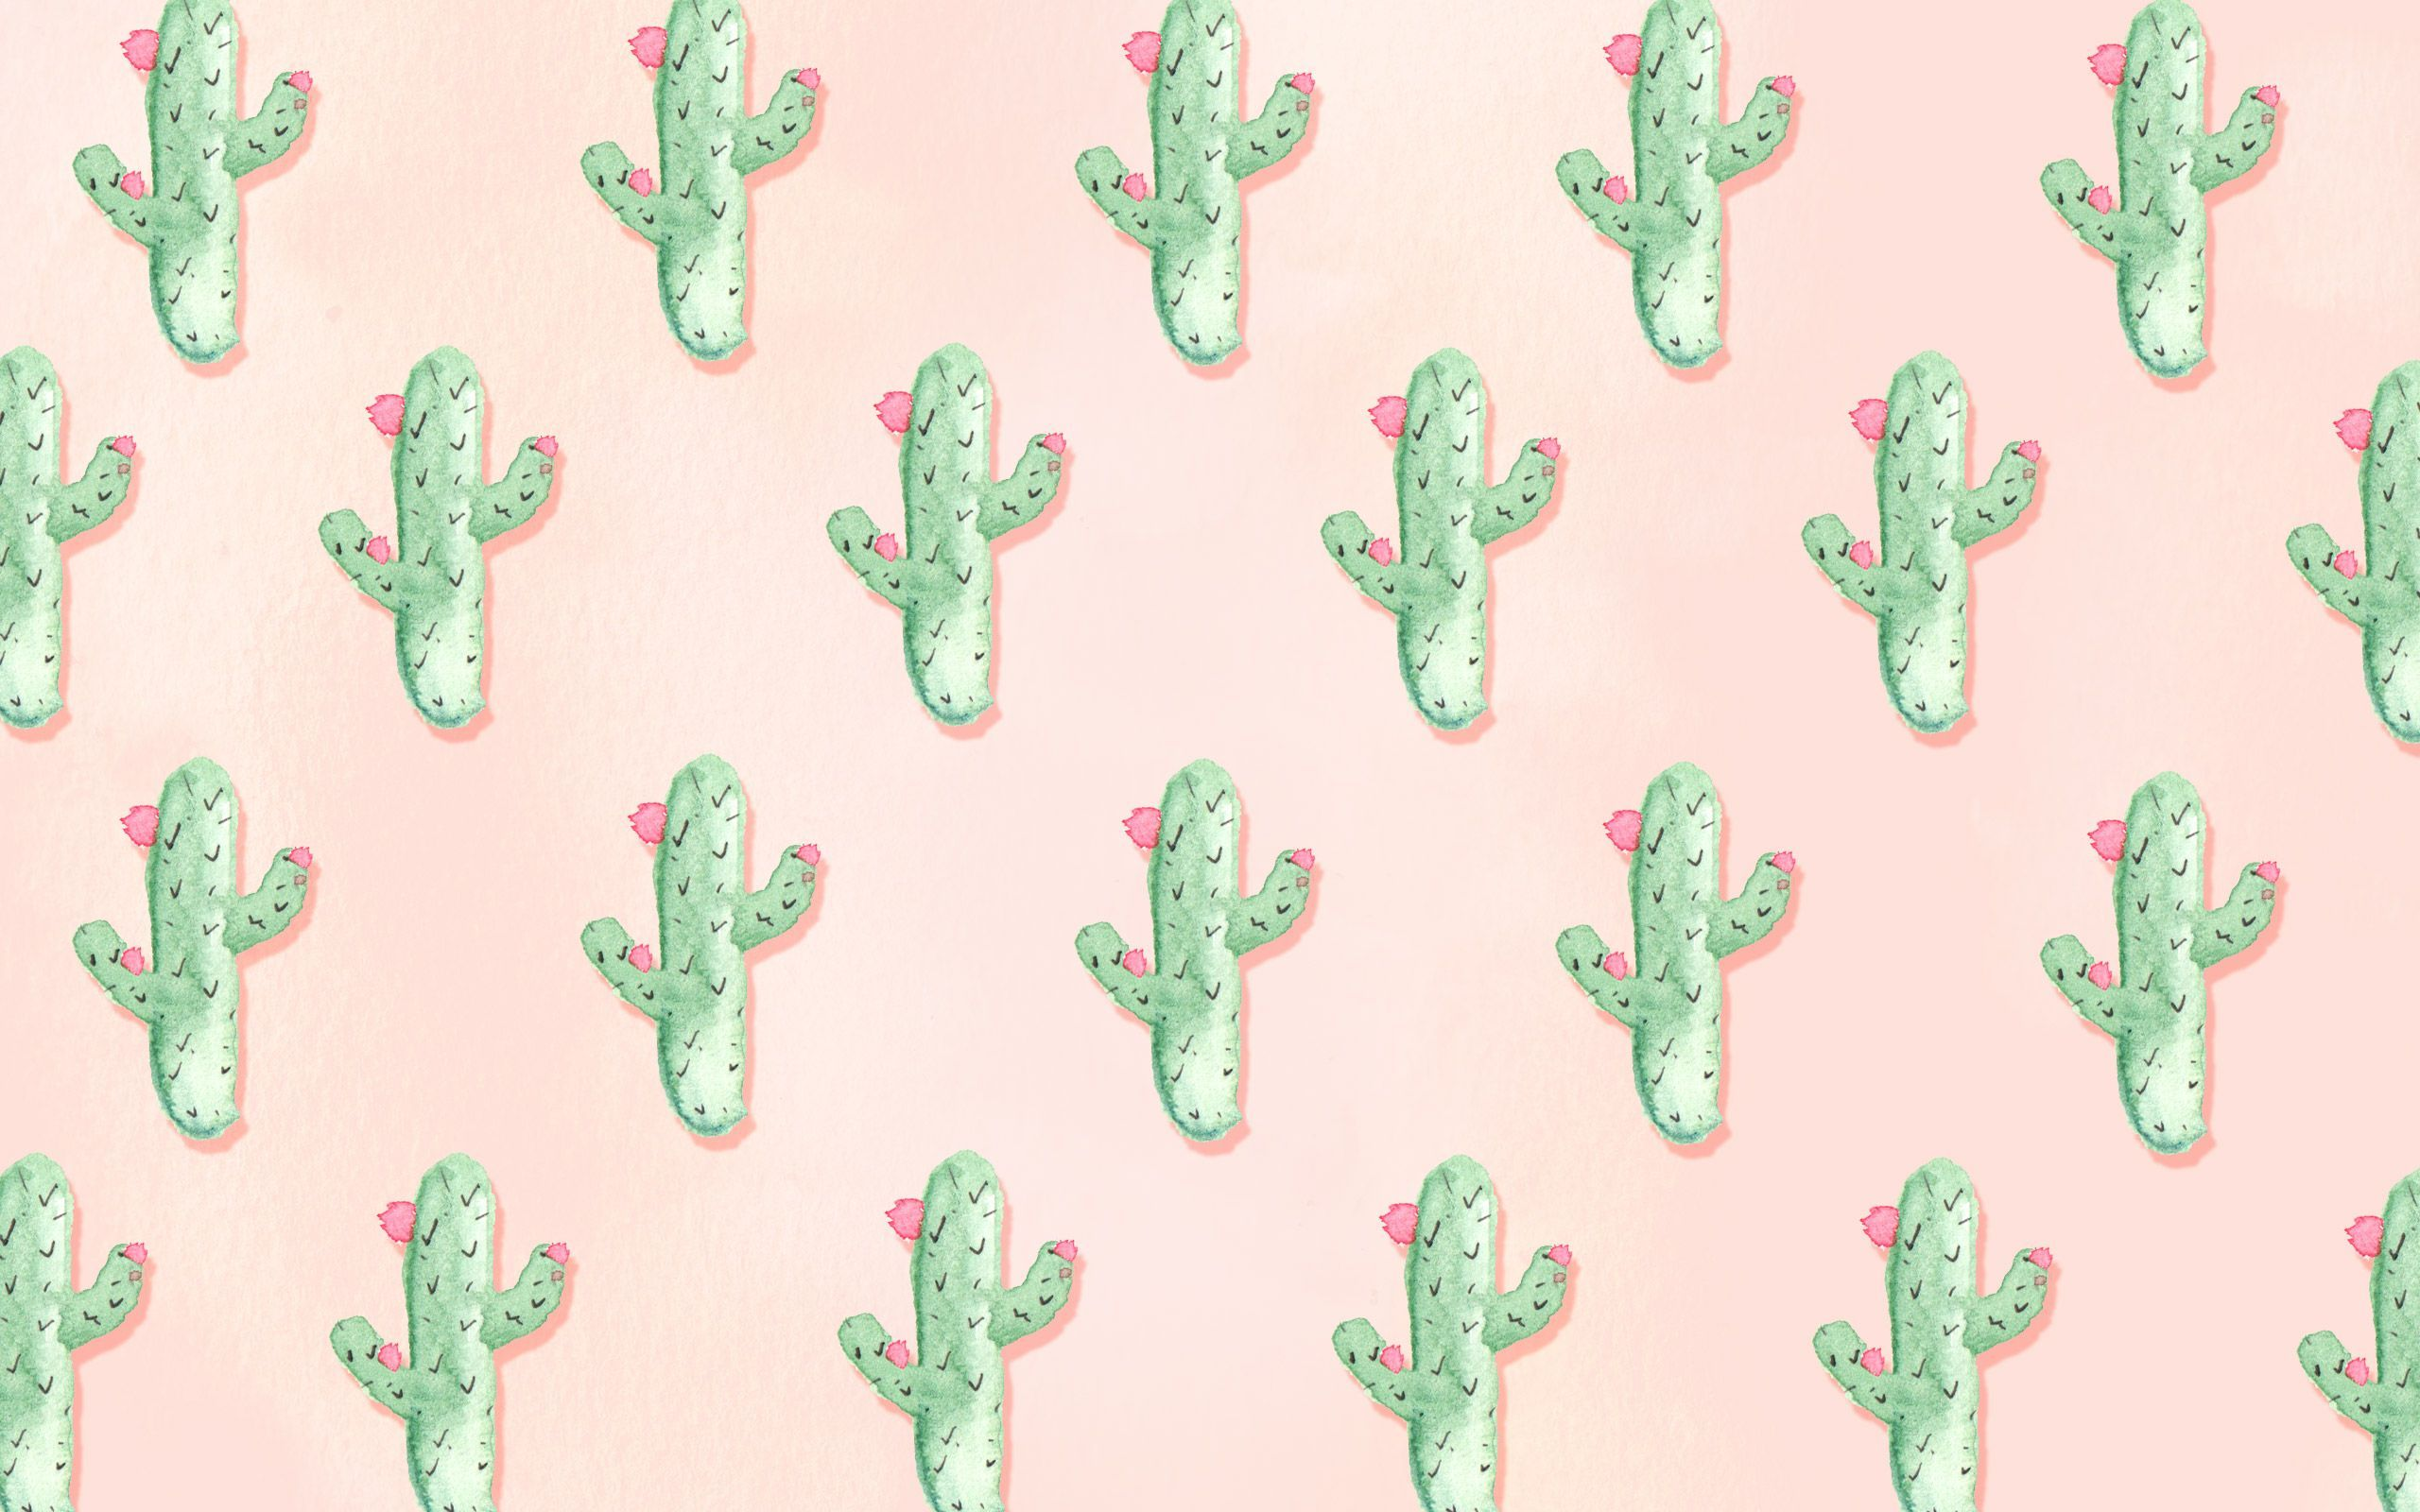 Aesthetic Cactus Wallpapers Top Free Aesthetic Cactus Backgrounds Wallpaperaccess